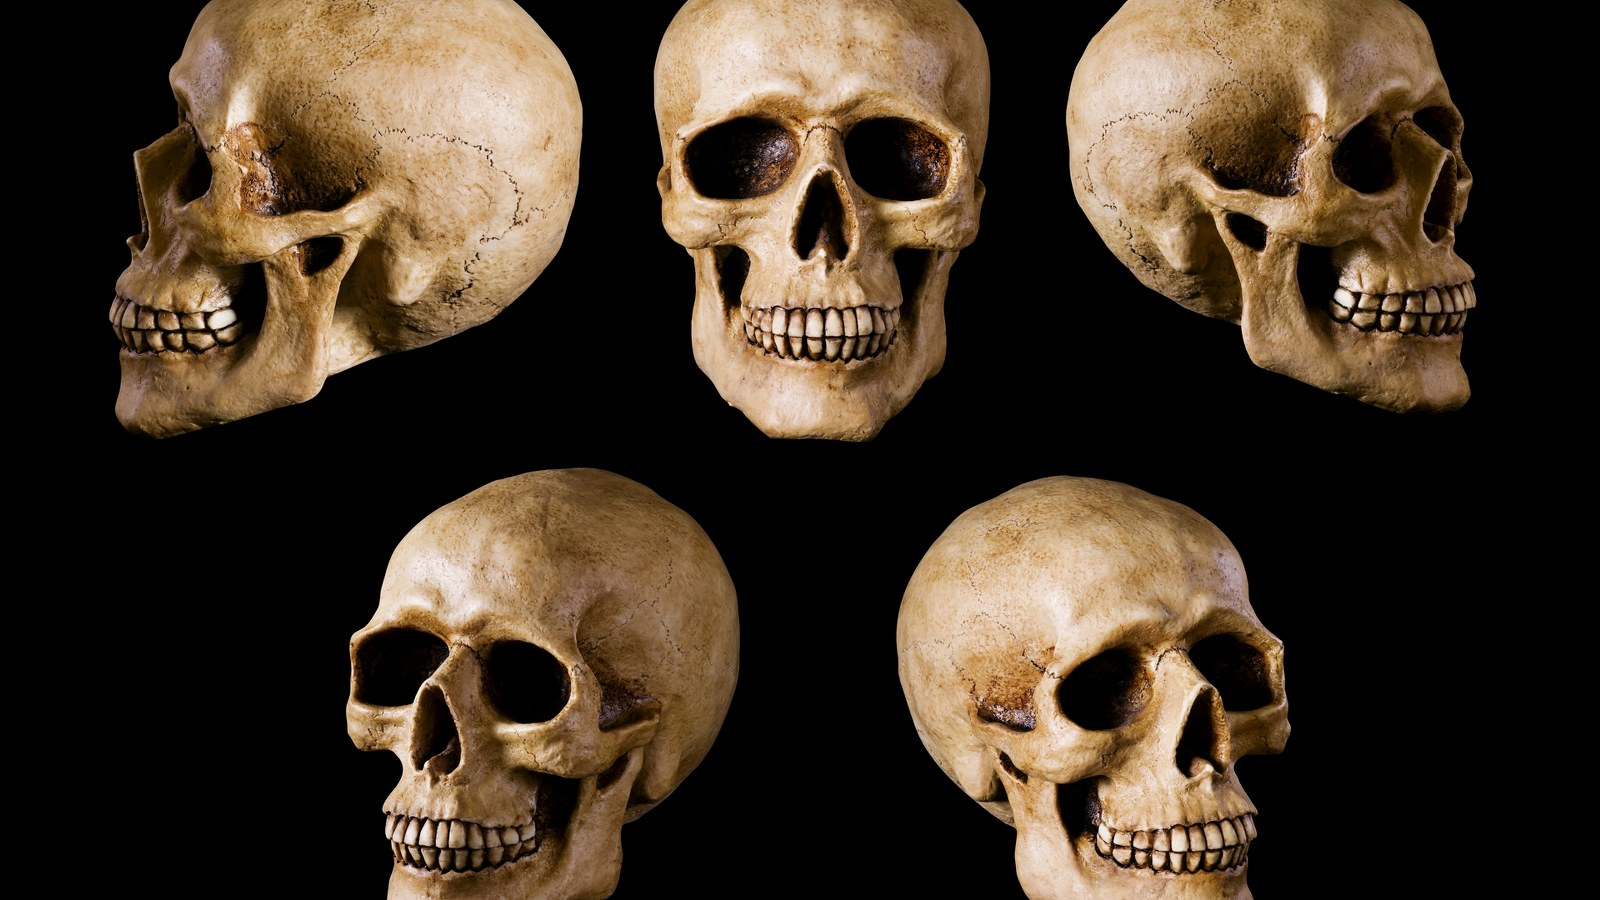 Head Skull Collections Photos | wallpapers55.com - Best Wallpapers for ...